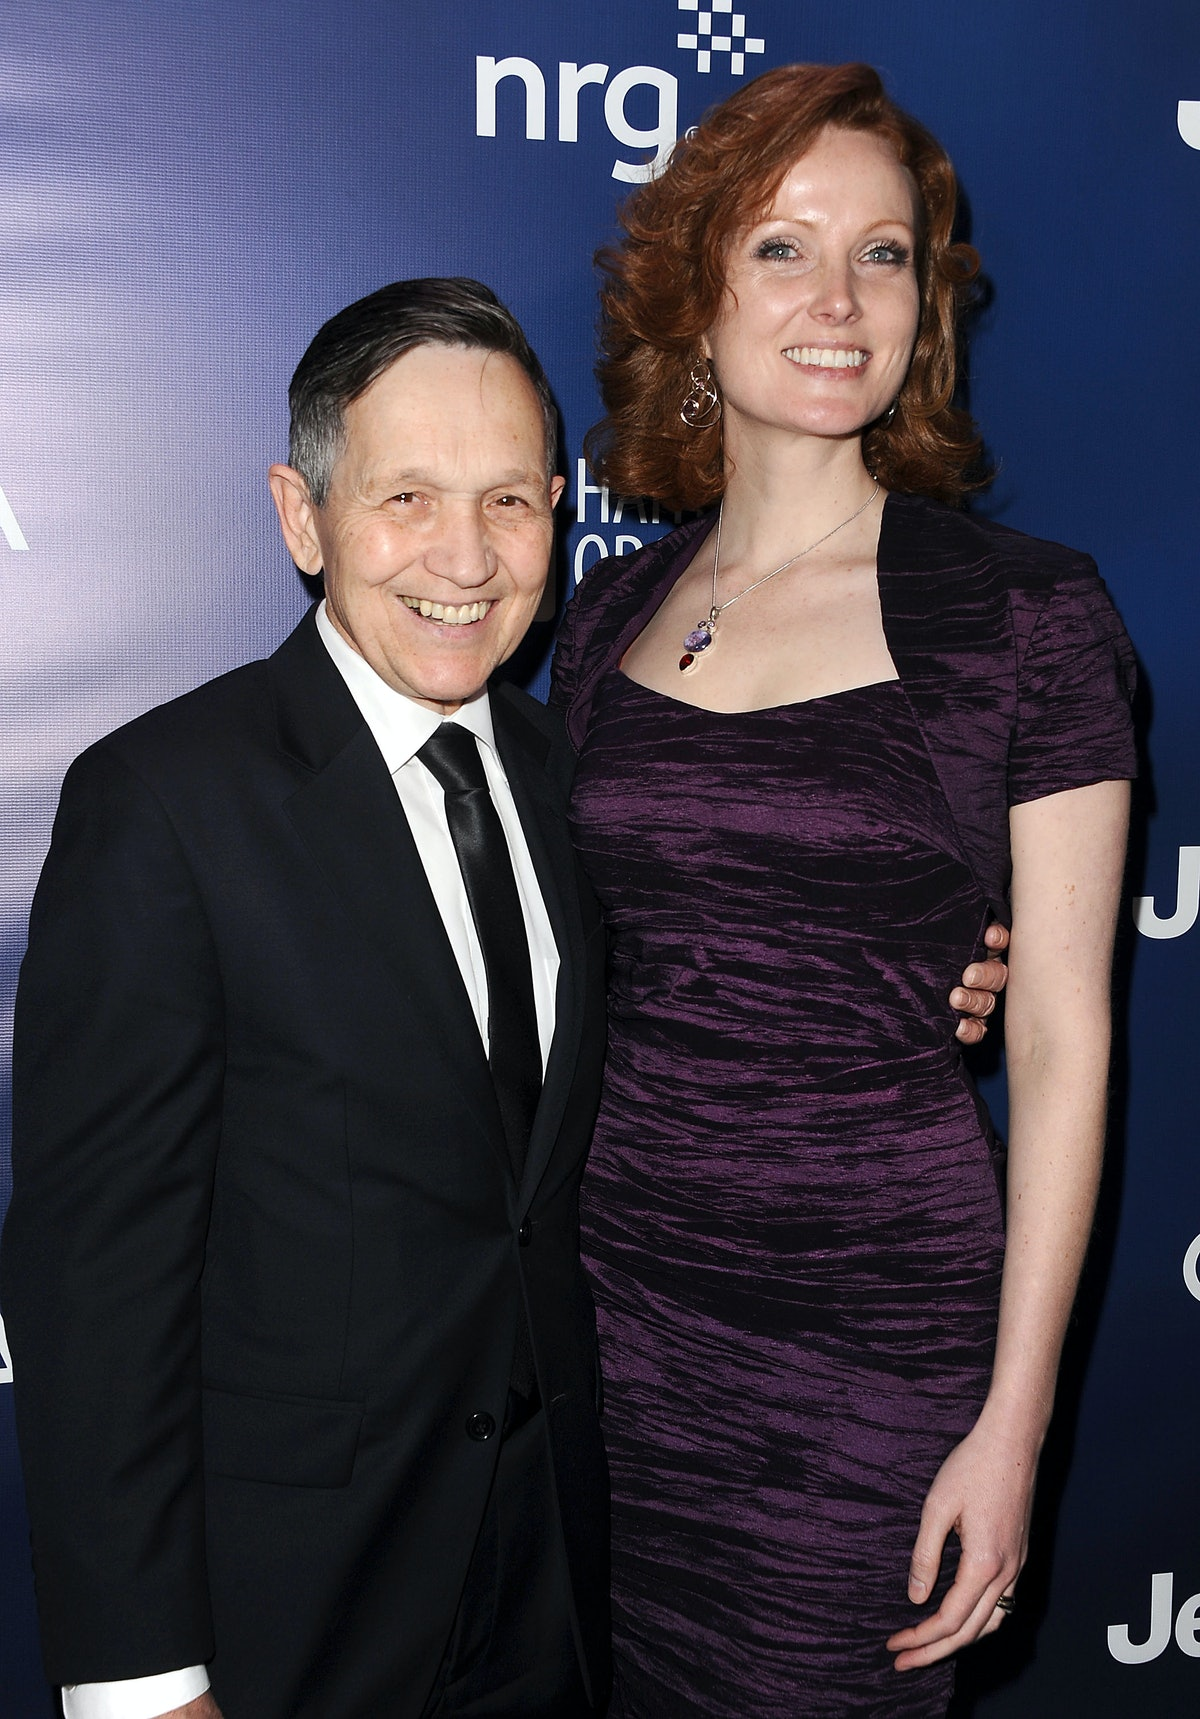 """LOS ANGELES, CA - JANUARY 10:  Dennis Kucinich and wife Elizabeth Kucinich attend the """"Help Haiti Ho..."""